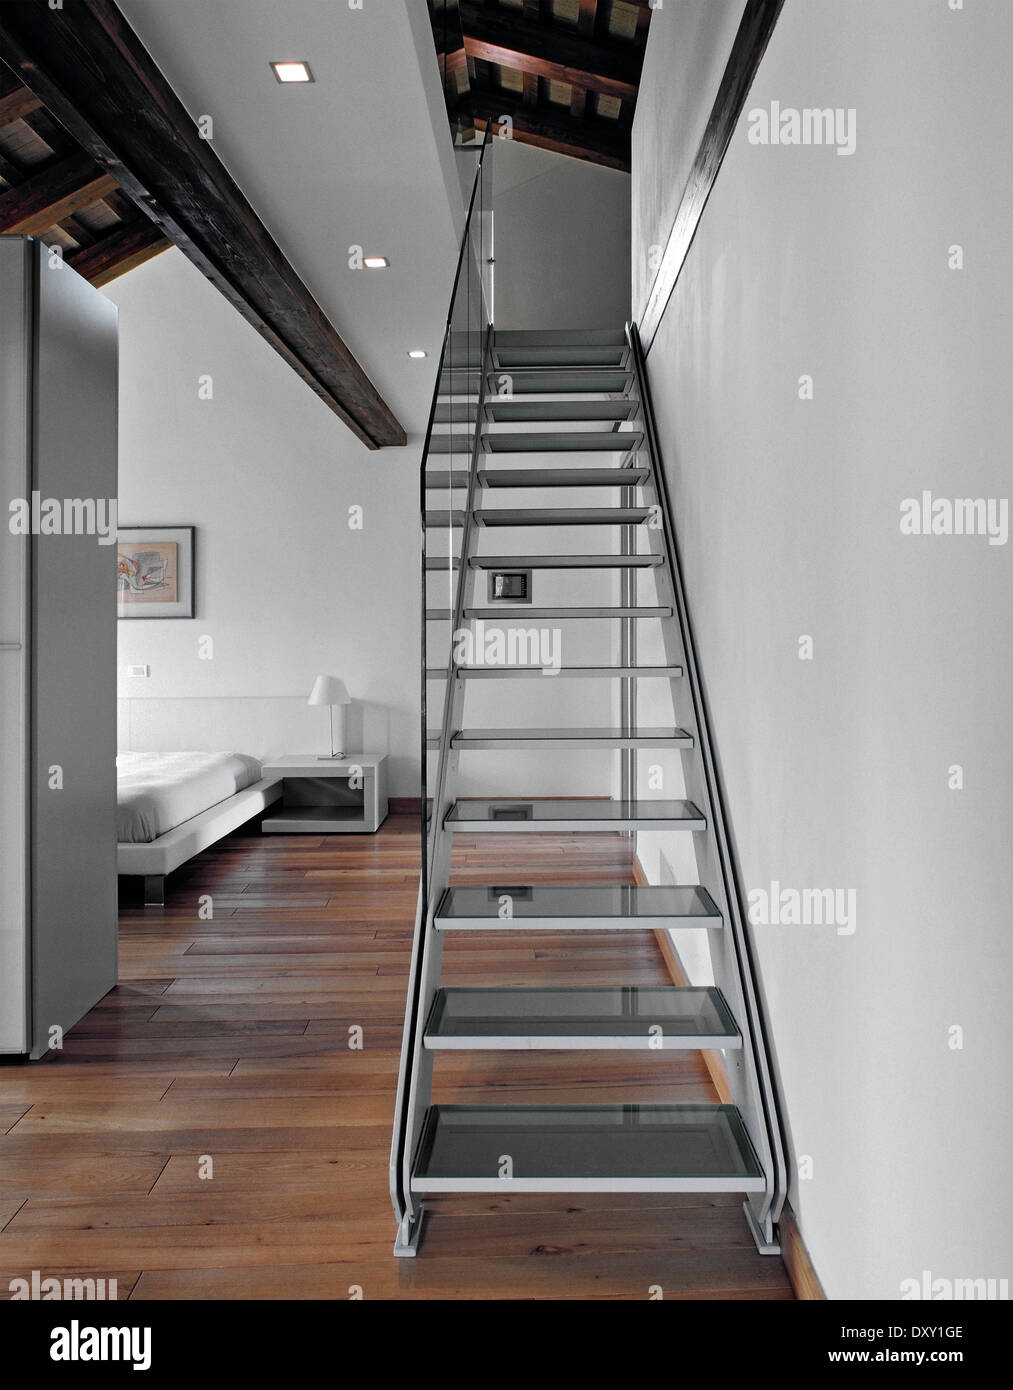 Iron Staircase And Bedroom In The Attic With Trussed Roof And Wood Floor